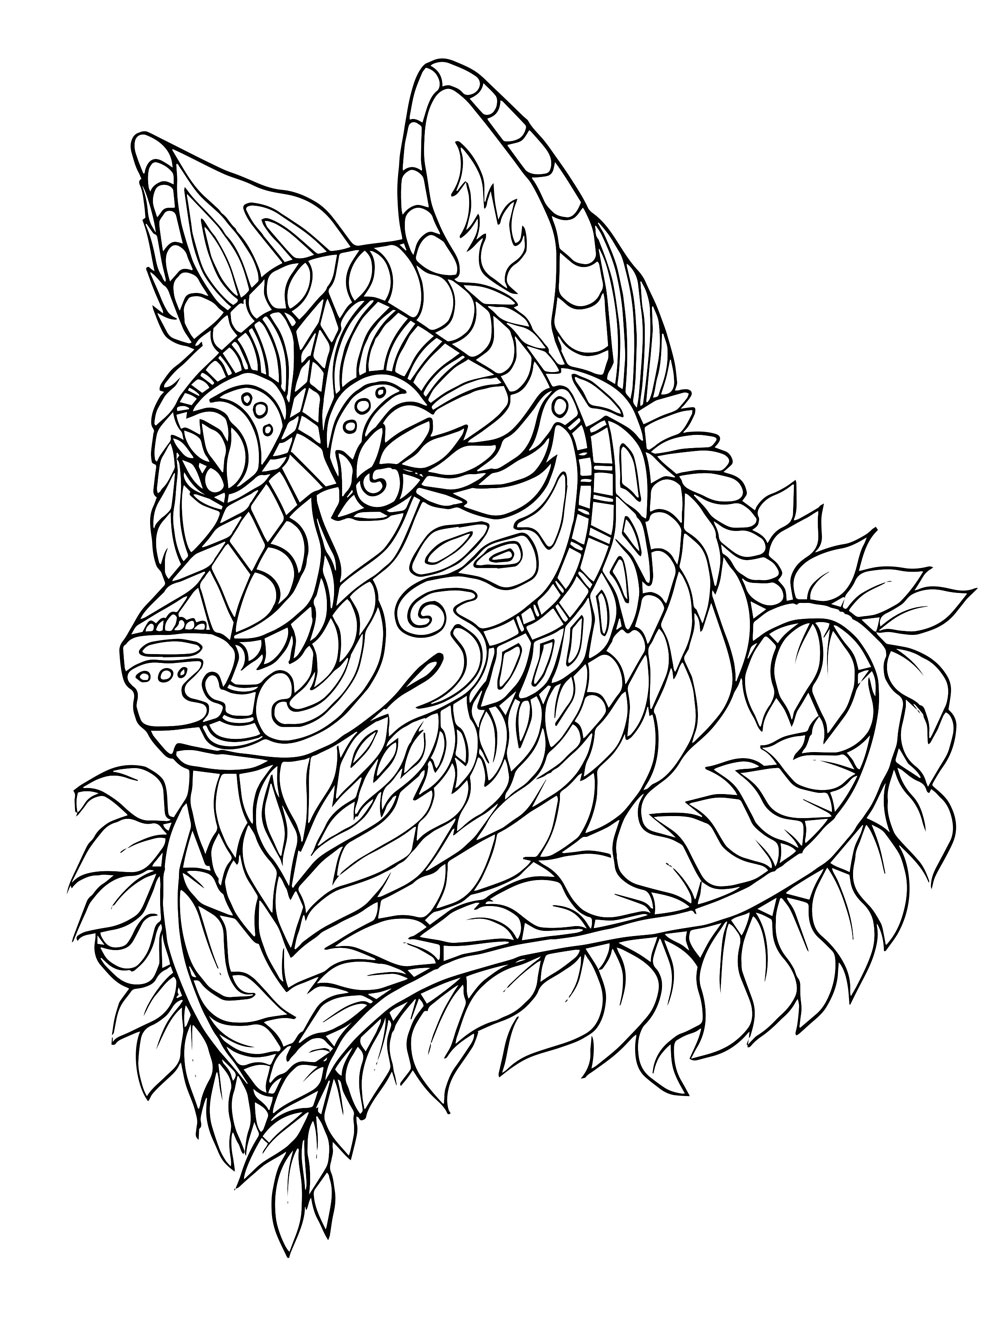 Stress Relieving Coloring Pages Printable At Getdrawings Com Free